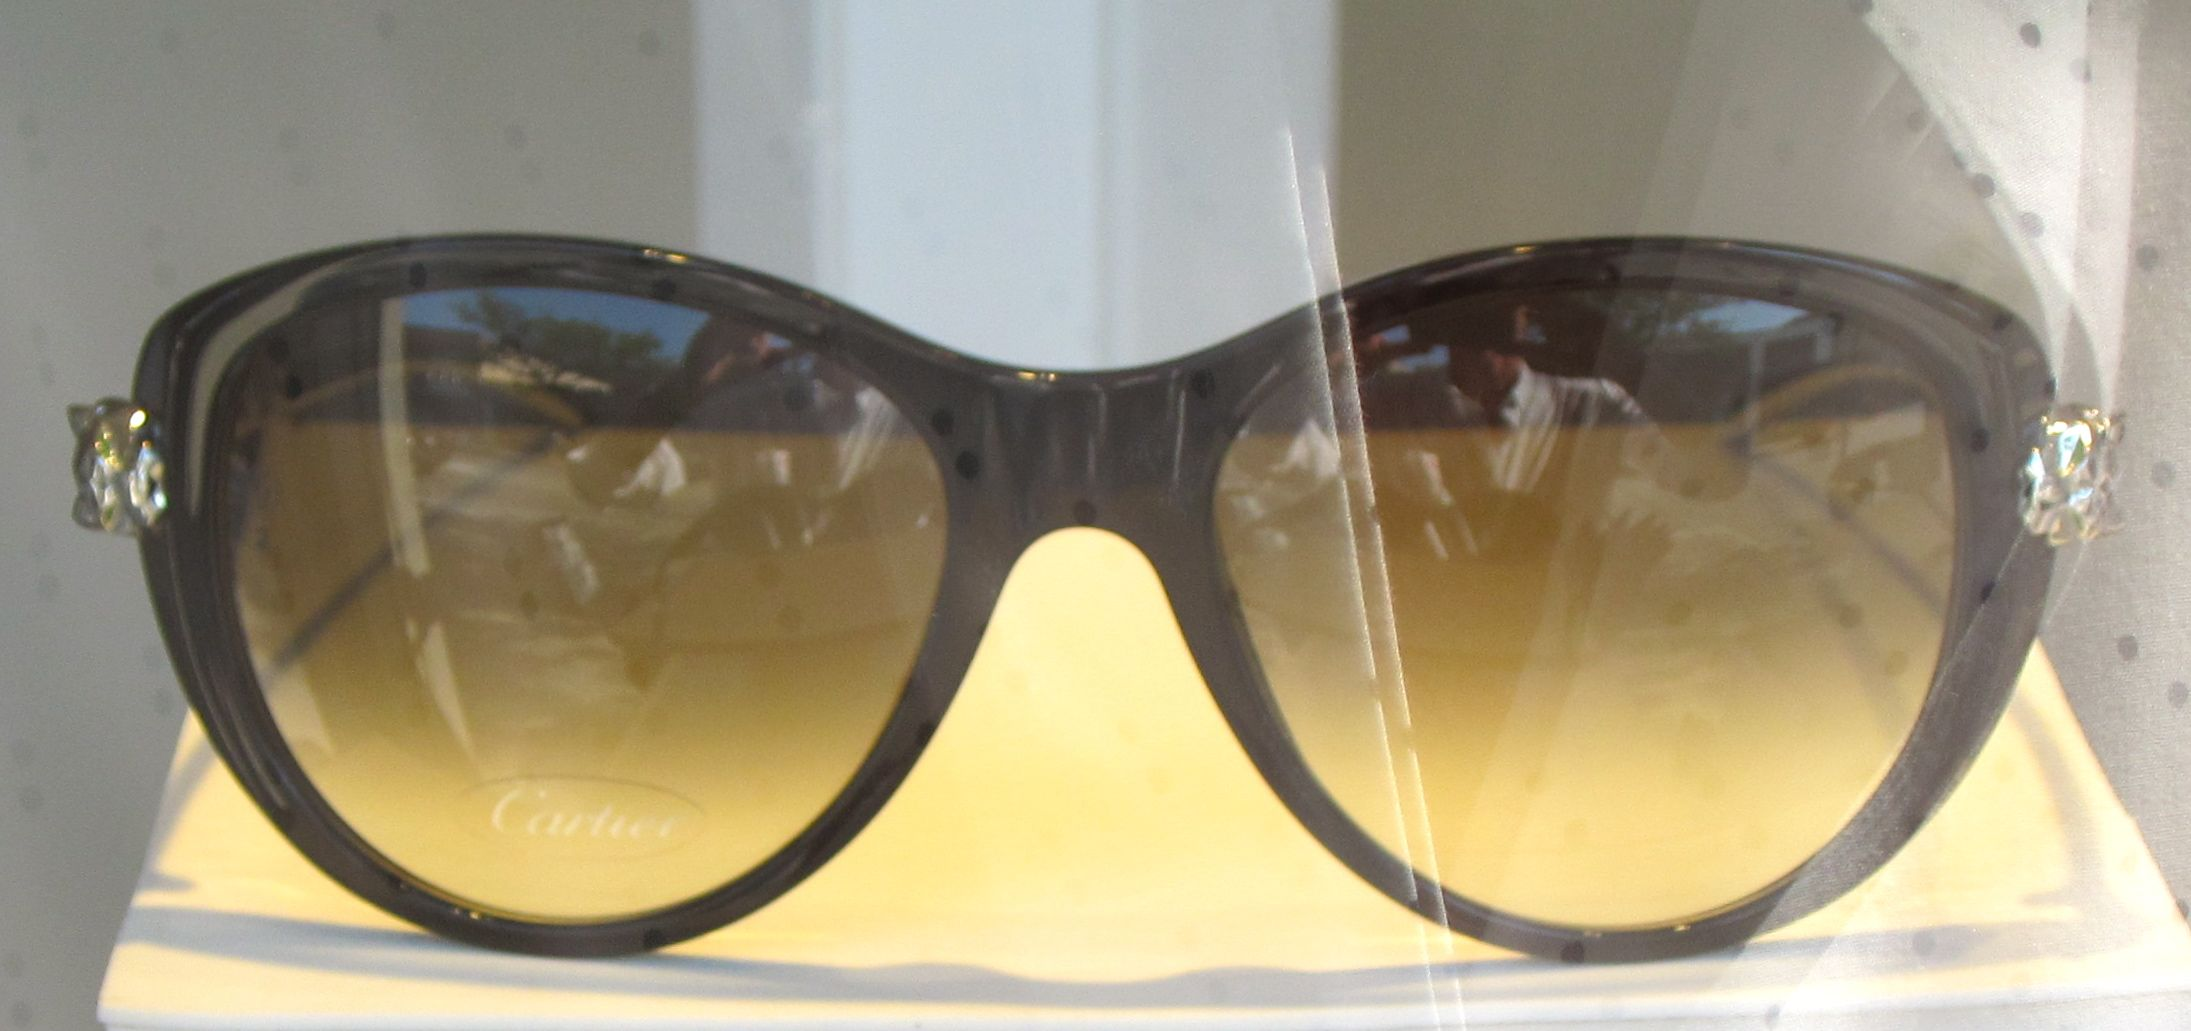 75efe7d927 Getting fancy + elegant with these  Cartier sunglasses at  Eyewear   FrameOfTheDay